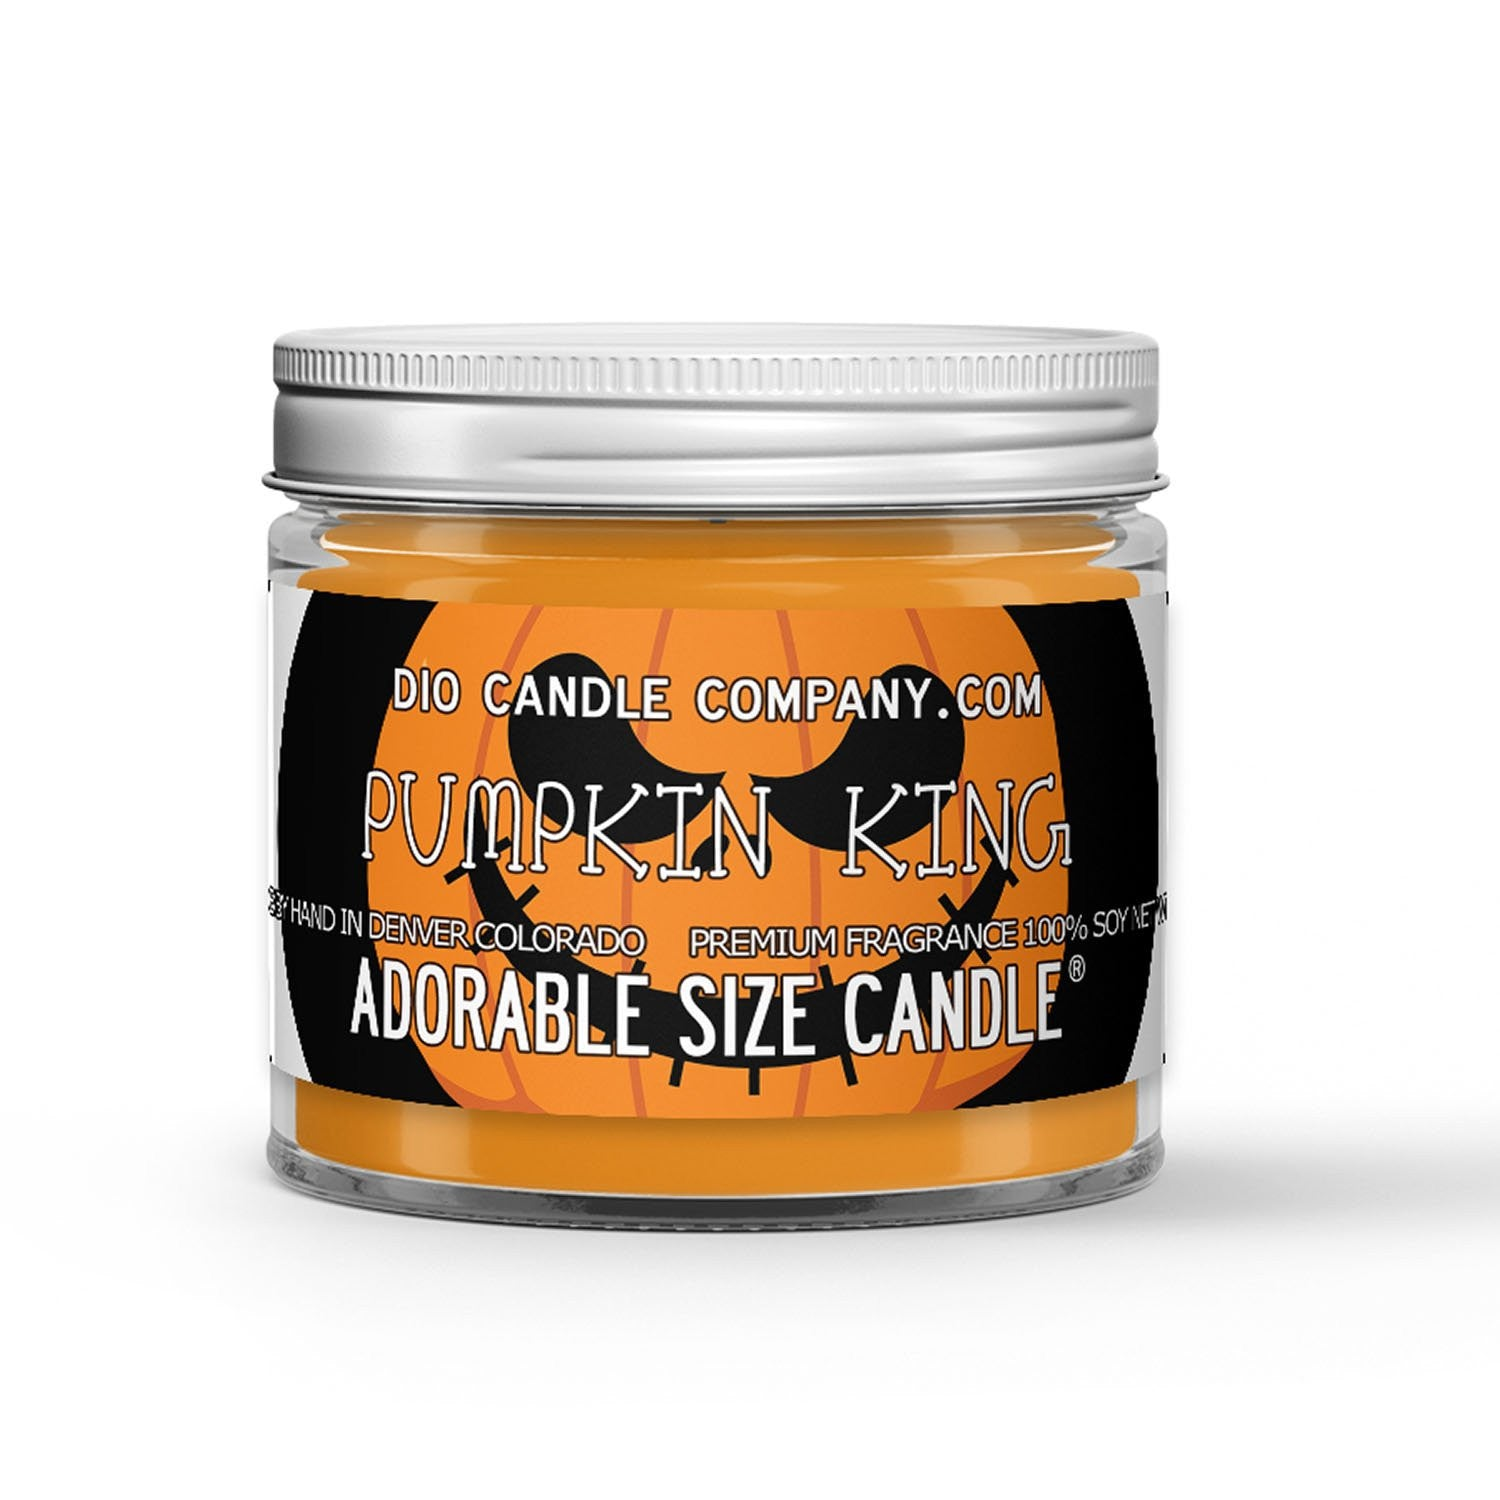 Halloween Pumpkin King Candle - Men's Cologne - Woods - Pumpkin - 1oz Adorable Size Candle® - Dio Candle Company